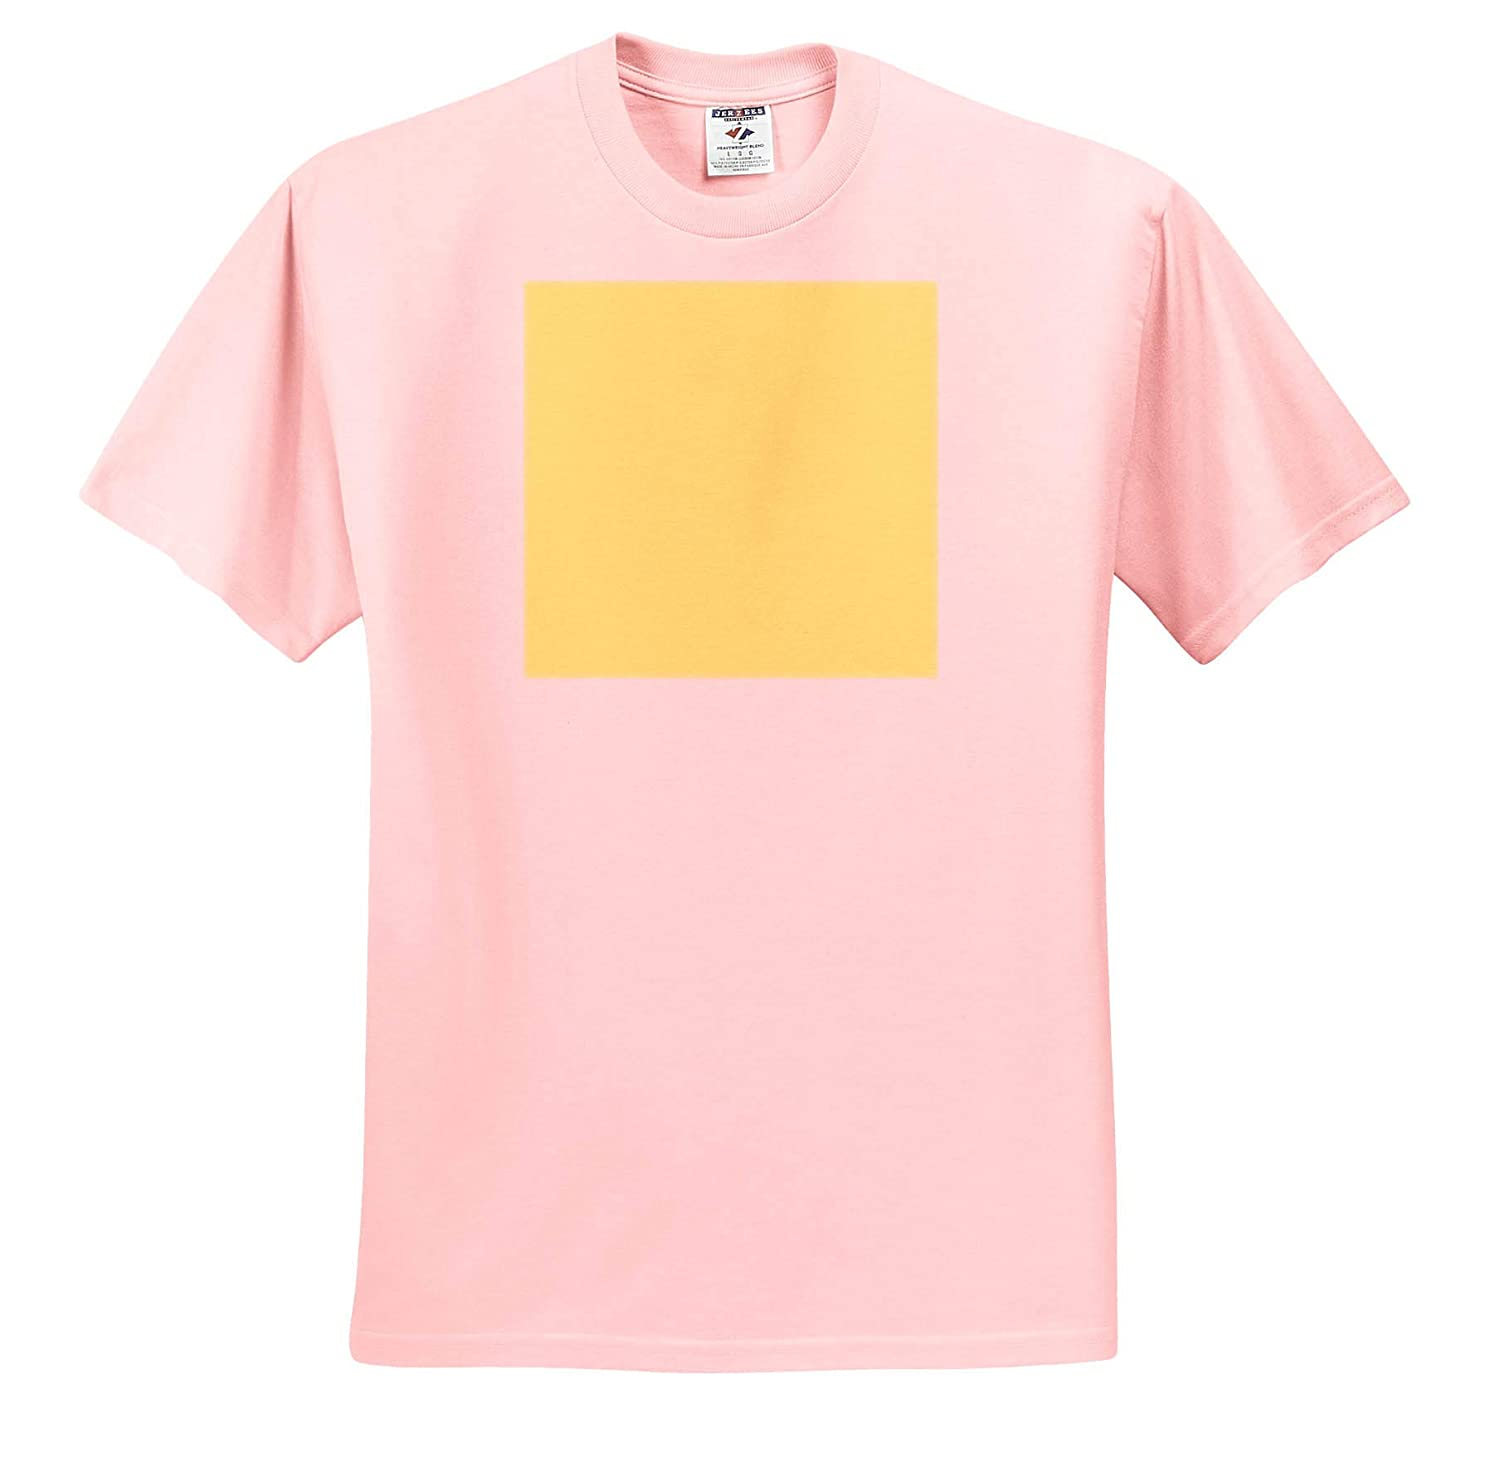 ts/_317397 3dRose Kultjers Colors Adult T-Shirt XL Color Canary Yellow